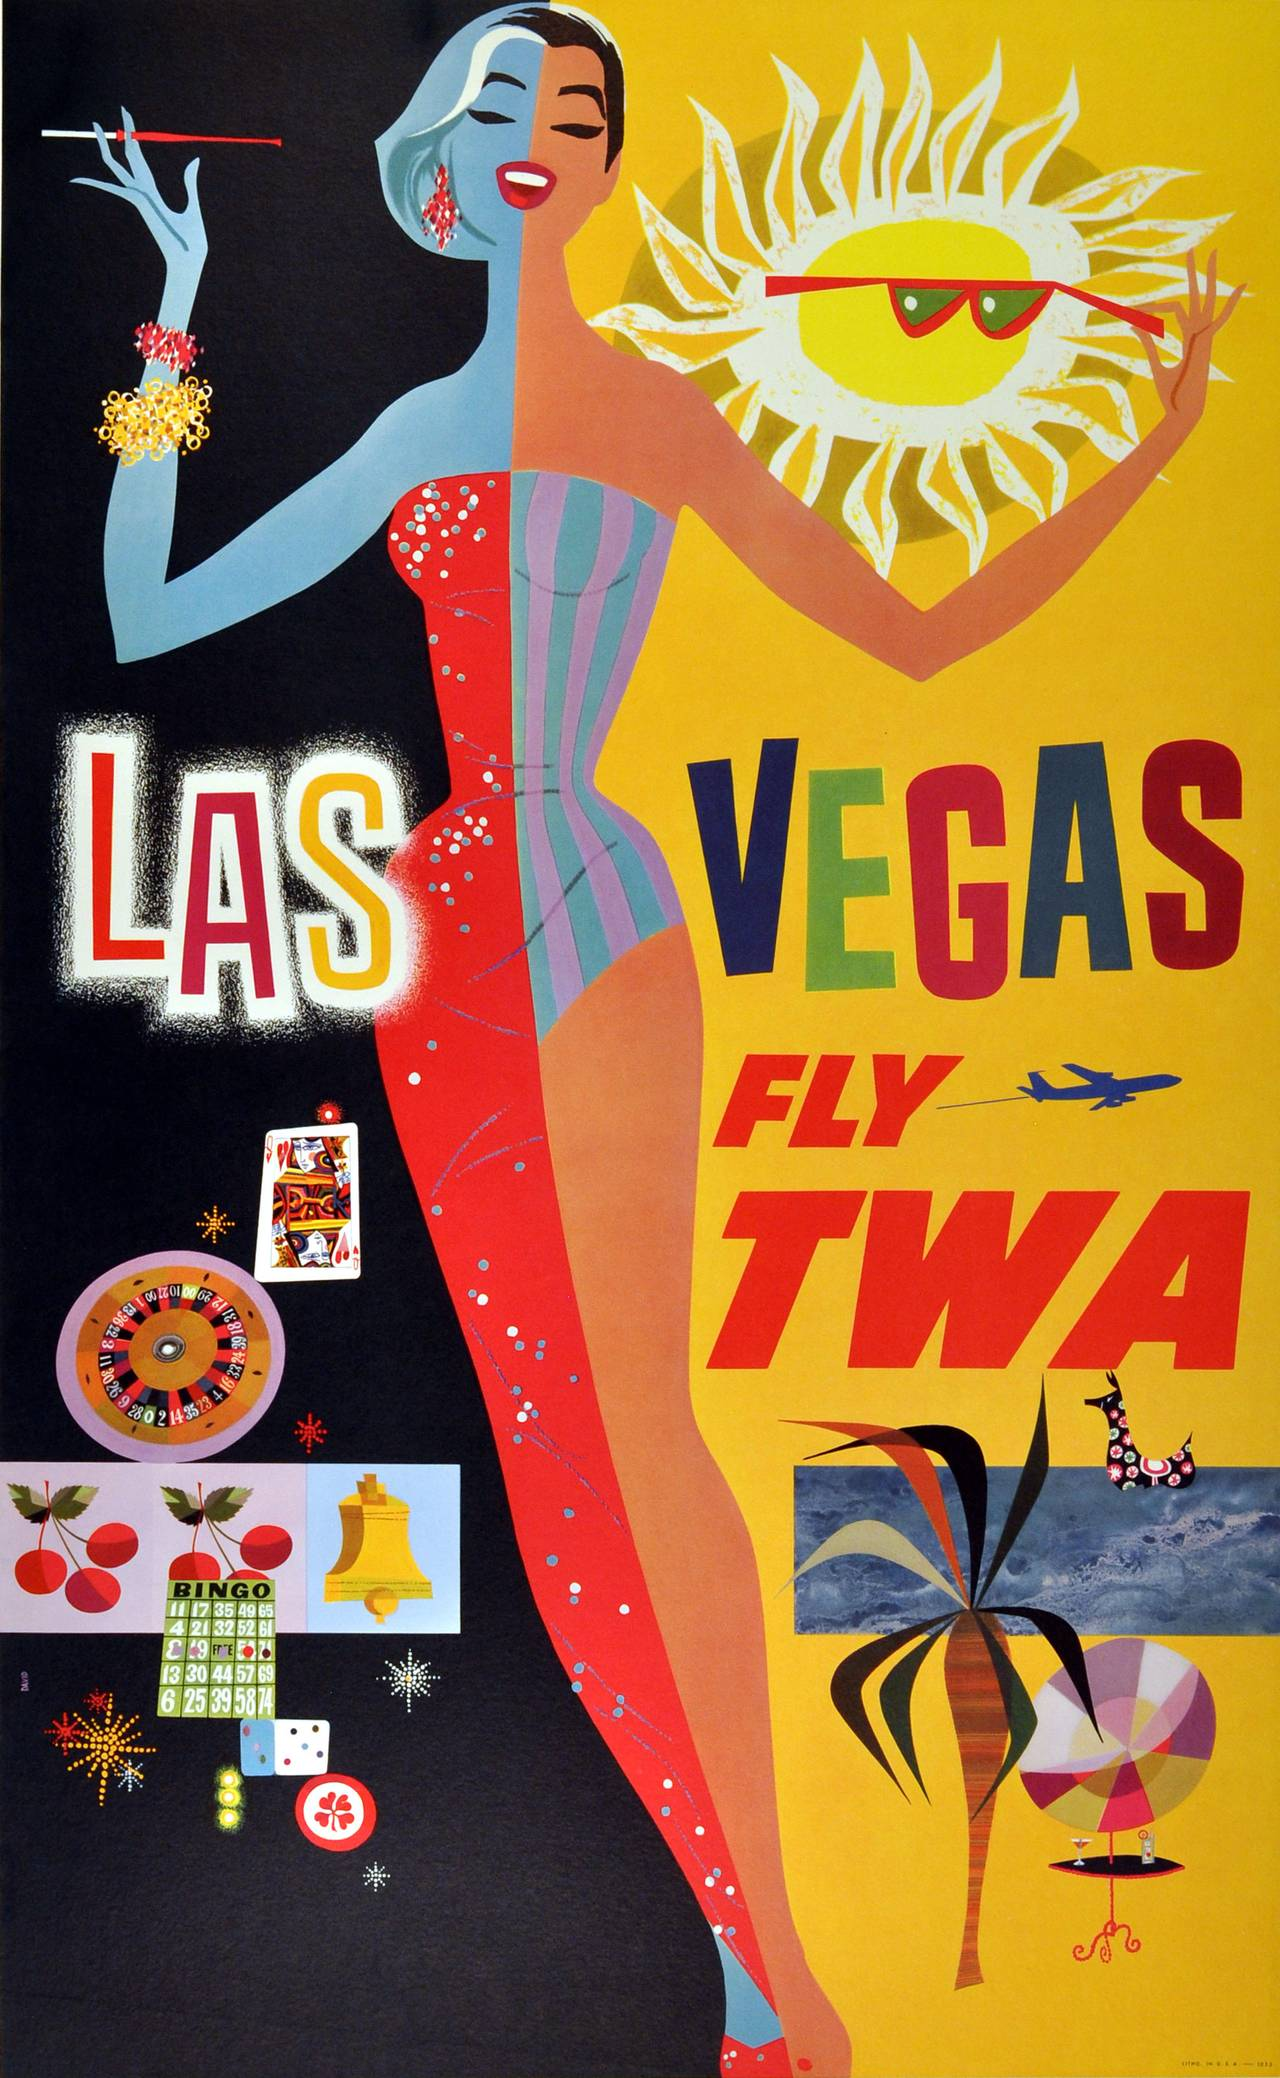 Original vintage travel poster advertising Las Vegas by TWA, Trans World Airlines. Colourful image featuring an elegant lady enjoying Las Vegas during the day and night, her right half wearing a sparkly red evening dress with her right hand holding